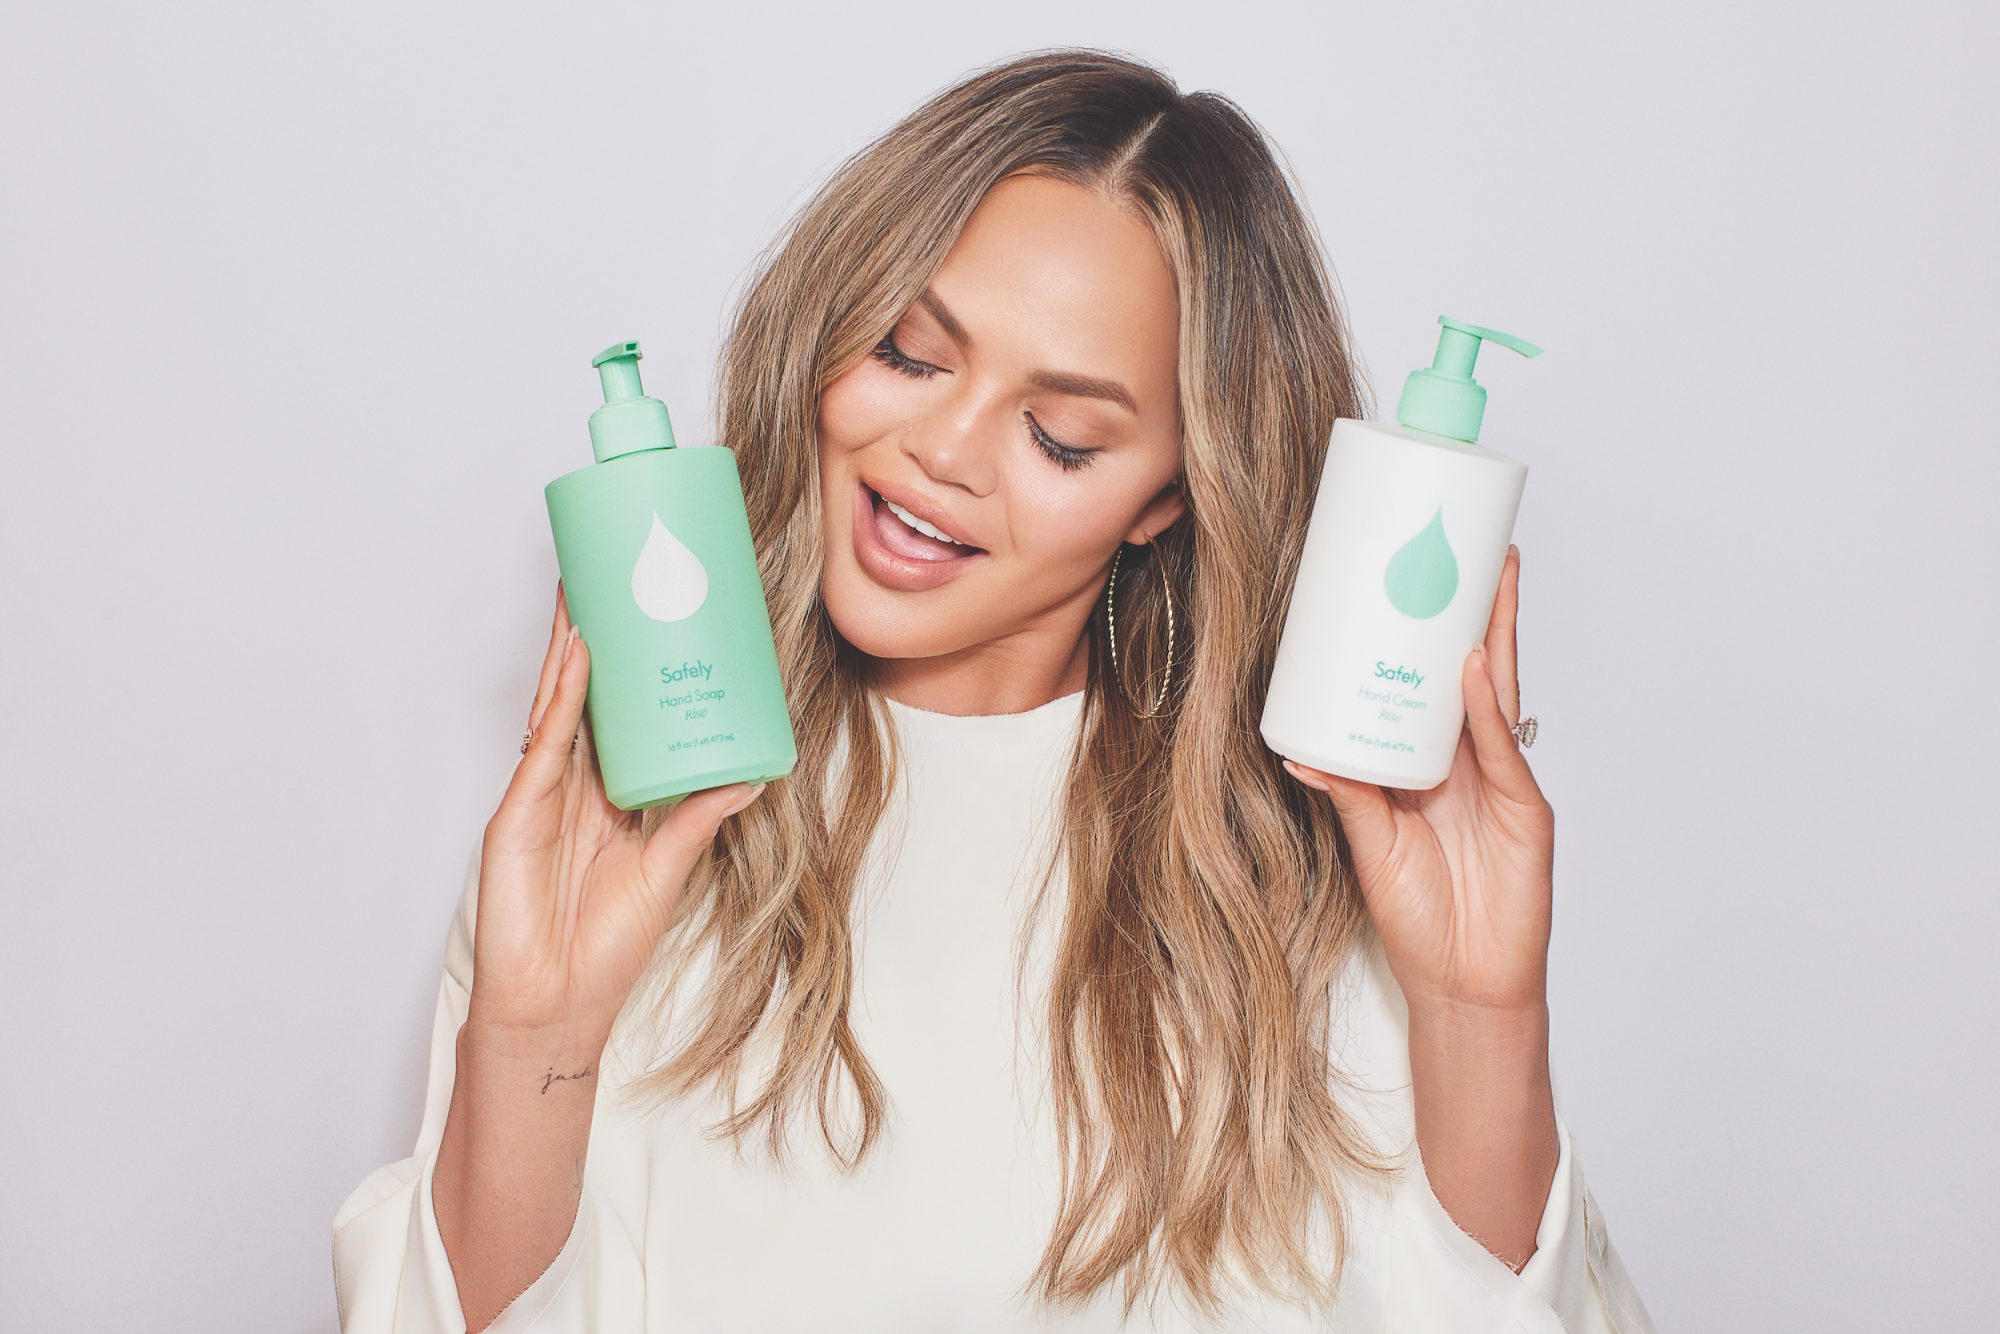 Chrissy Teigen Safely Cleaning Products